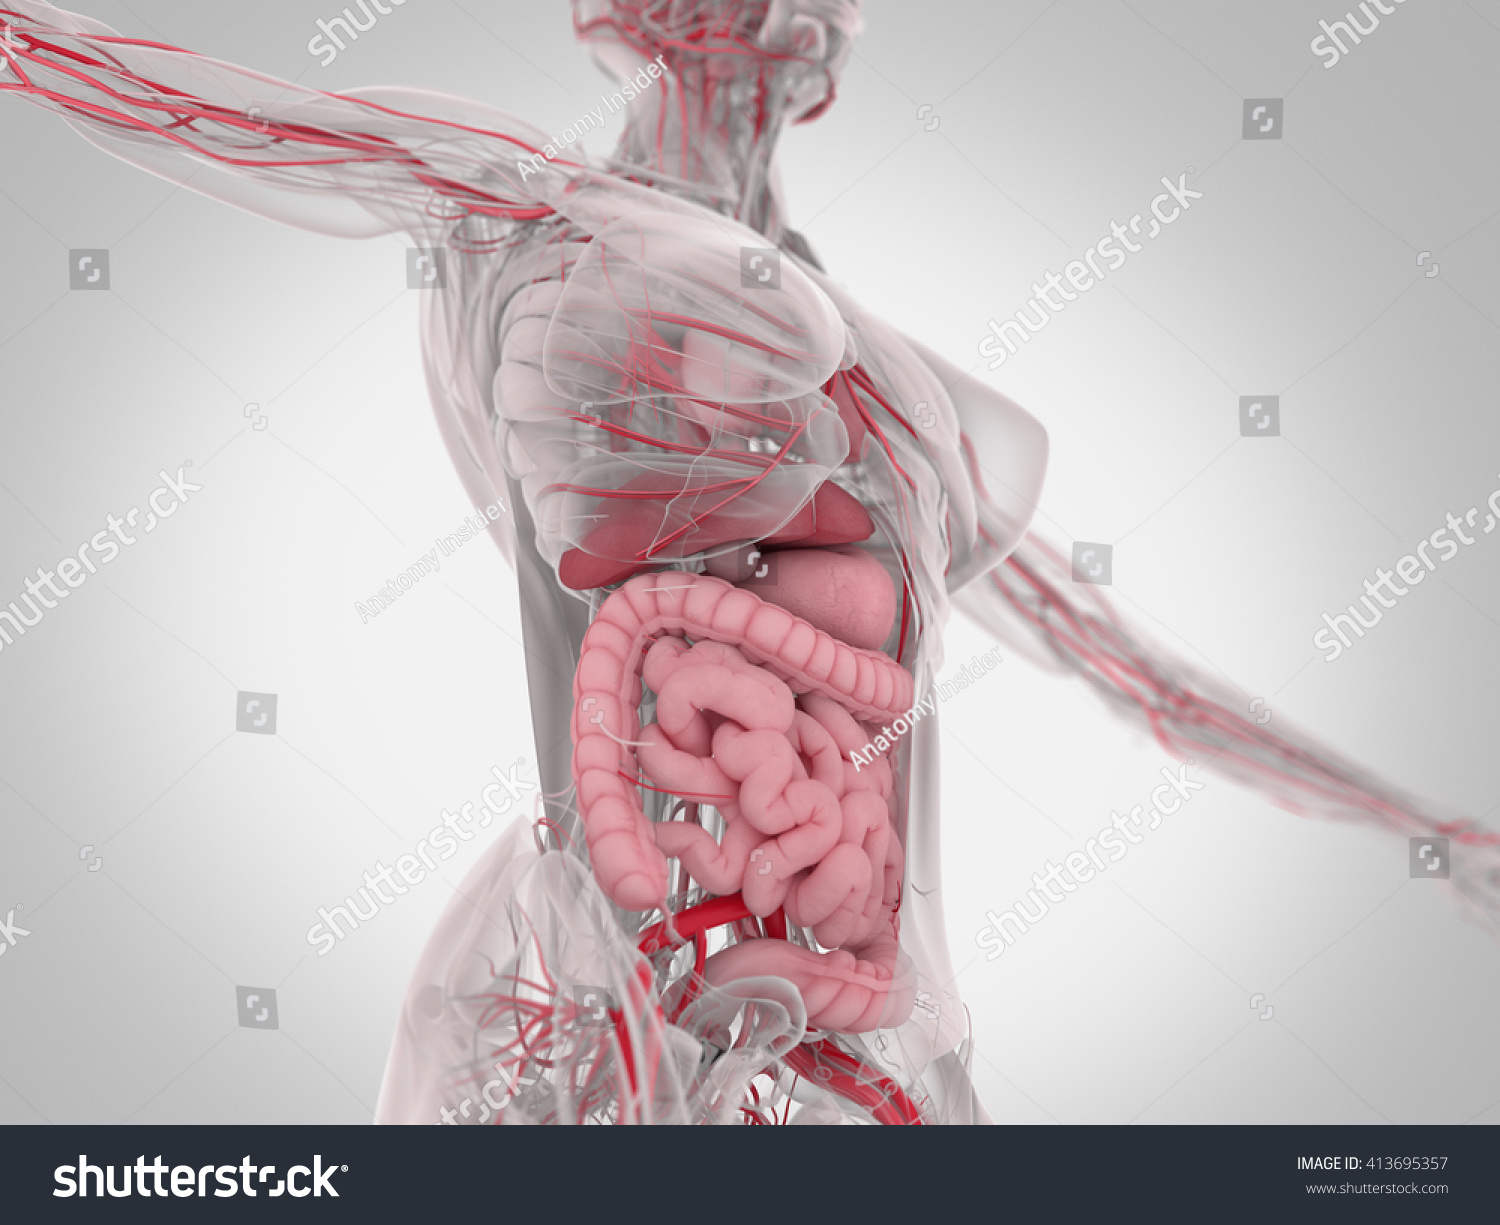 Female Human Anatomy Torso Showing Intestines Stockillustration